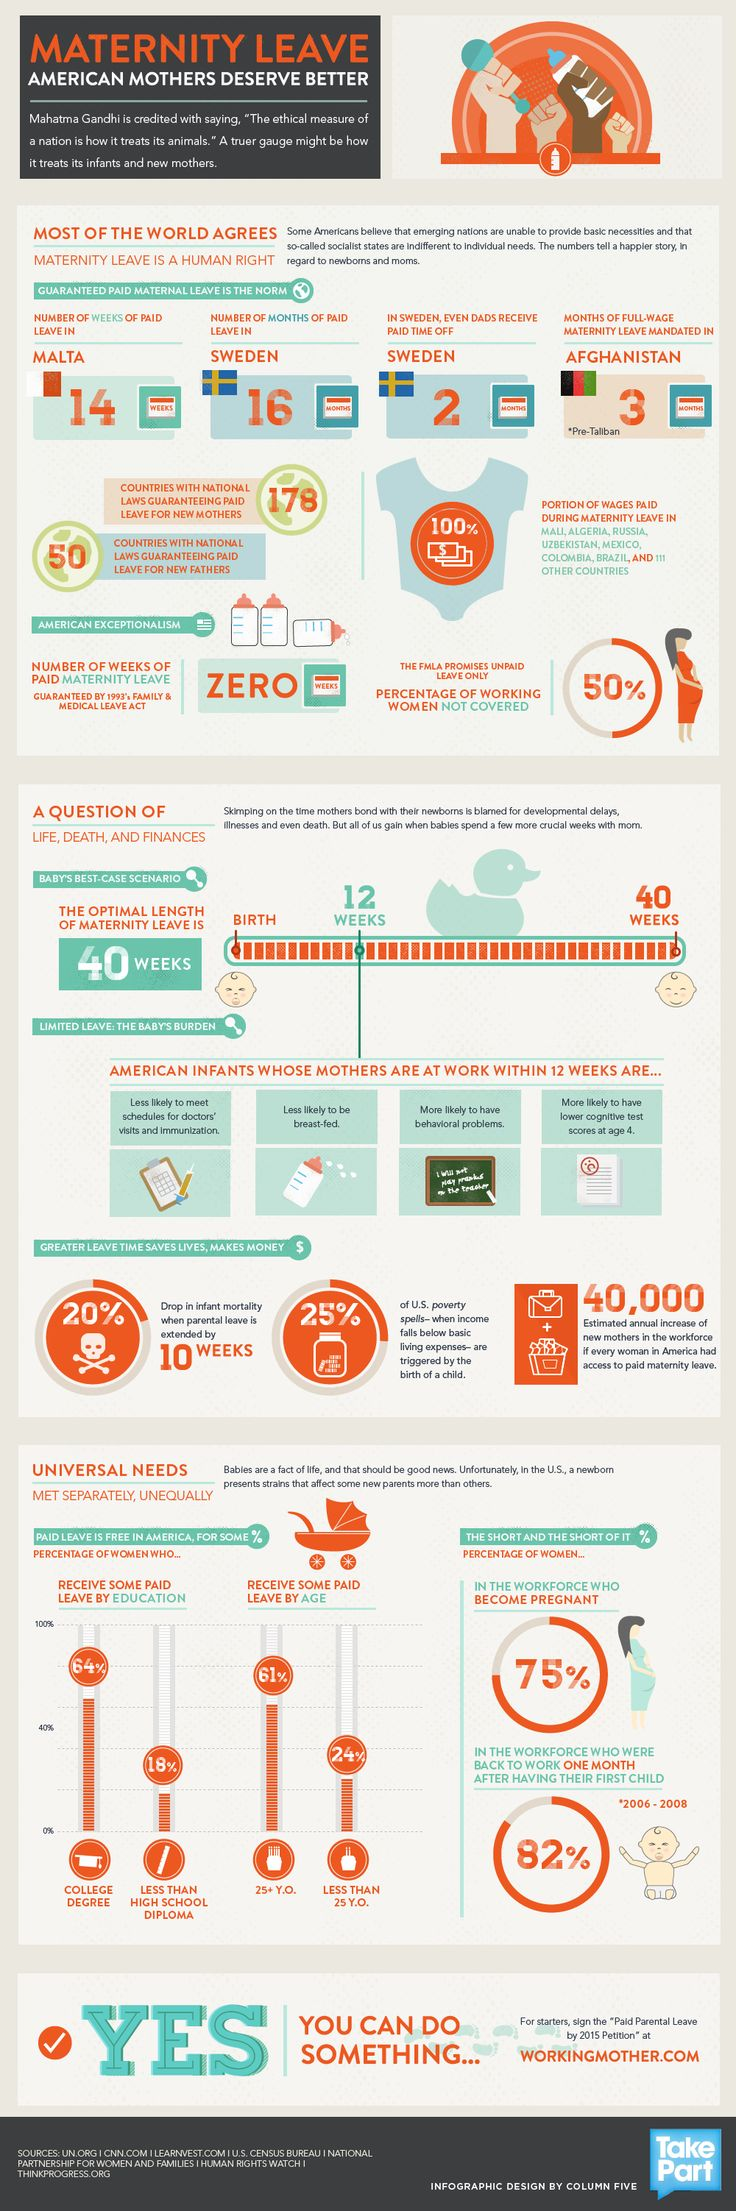 Infographic on paid maternity leave